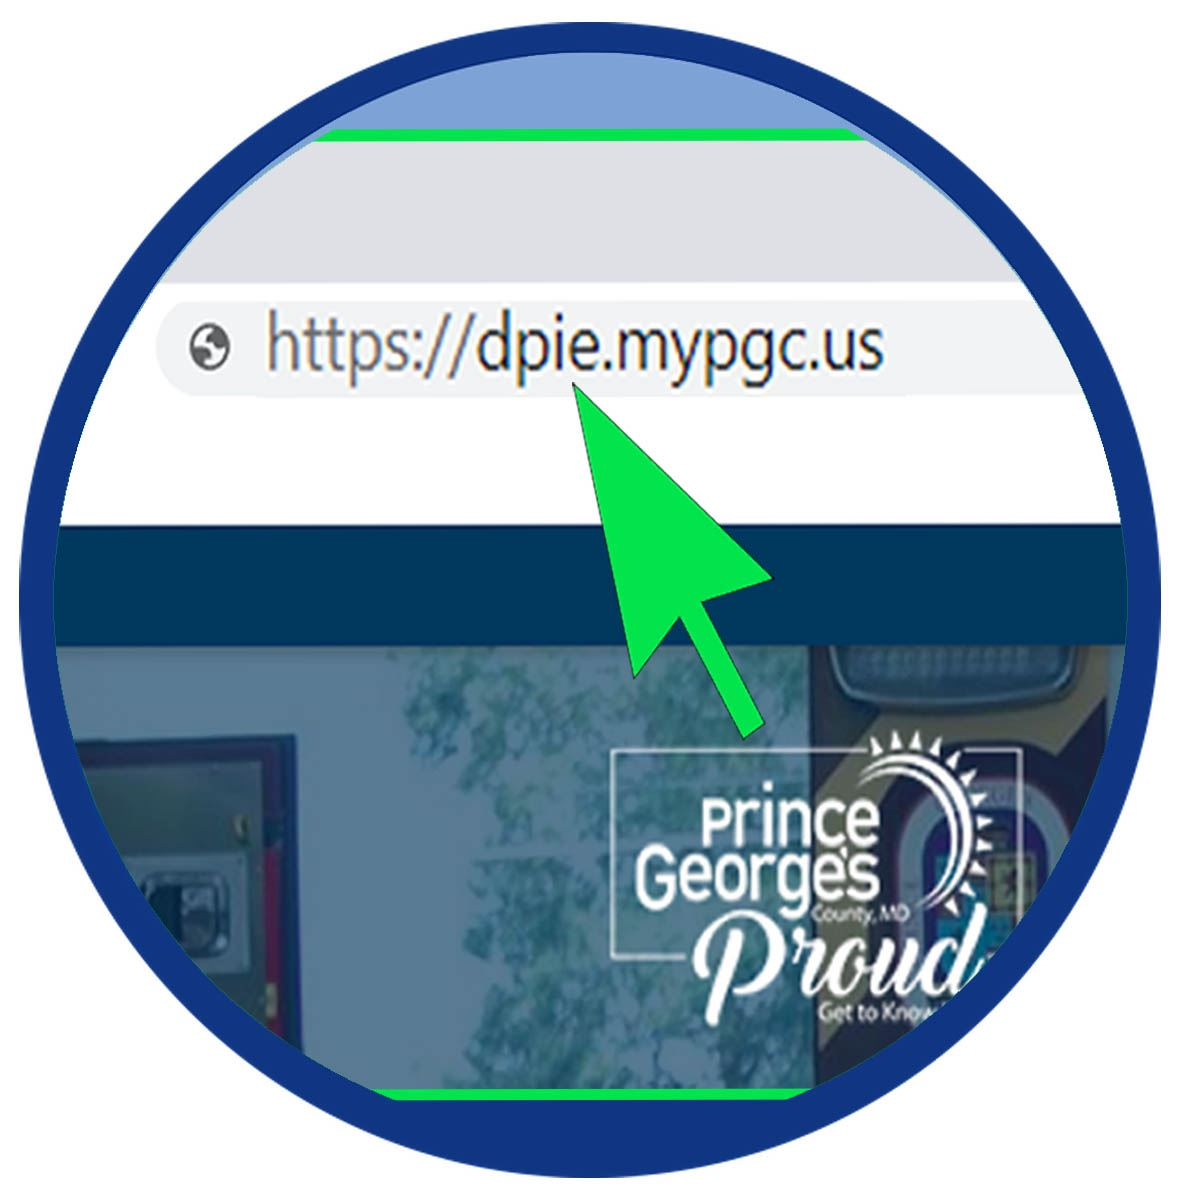 Resources icon of arrow pointing to DPIE url takes you to recommended resources for business owners